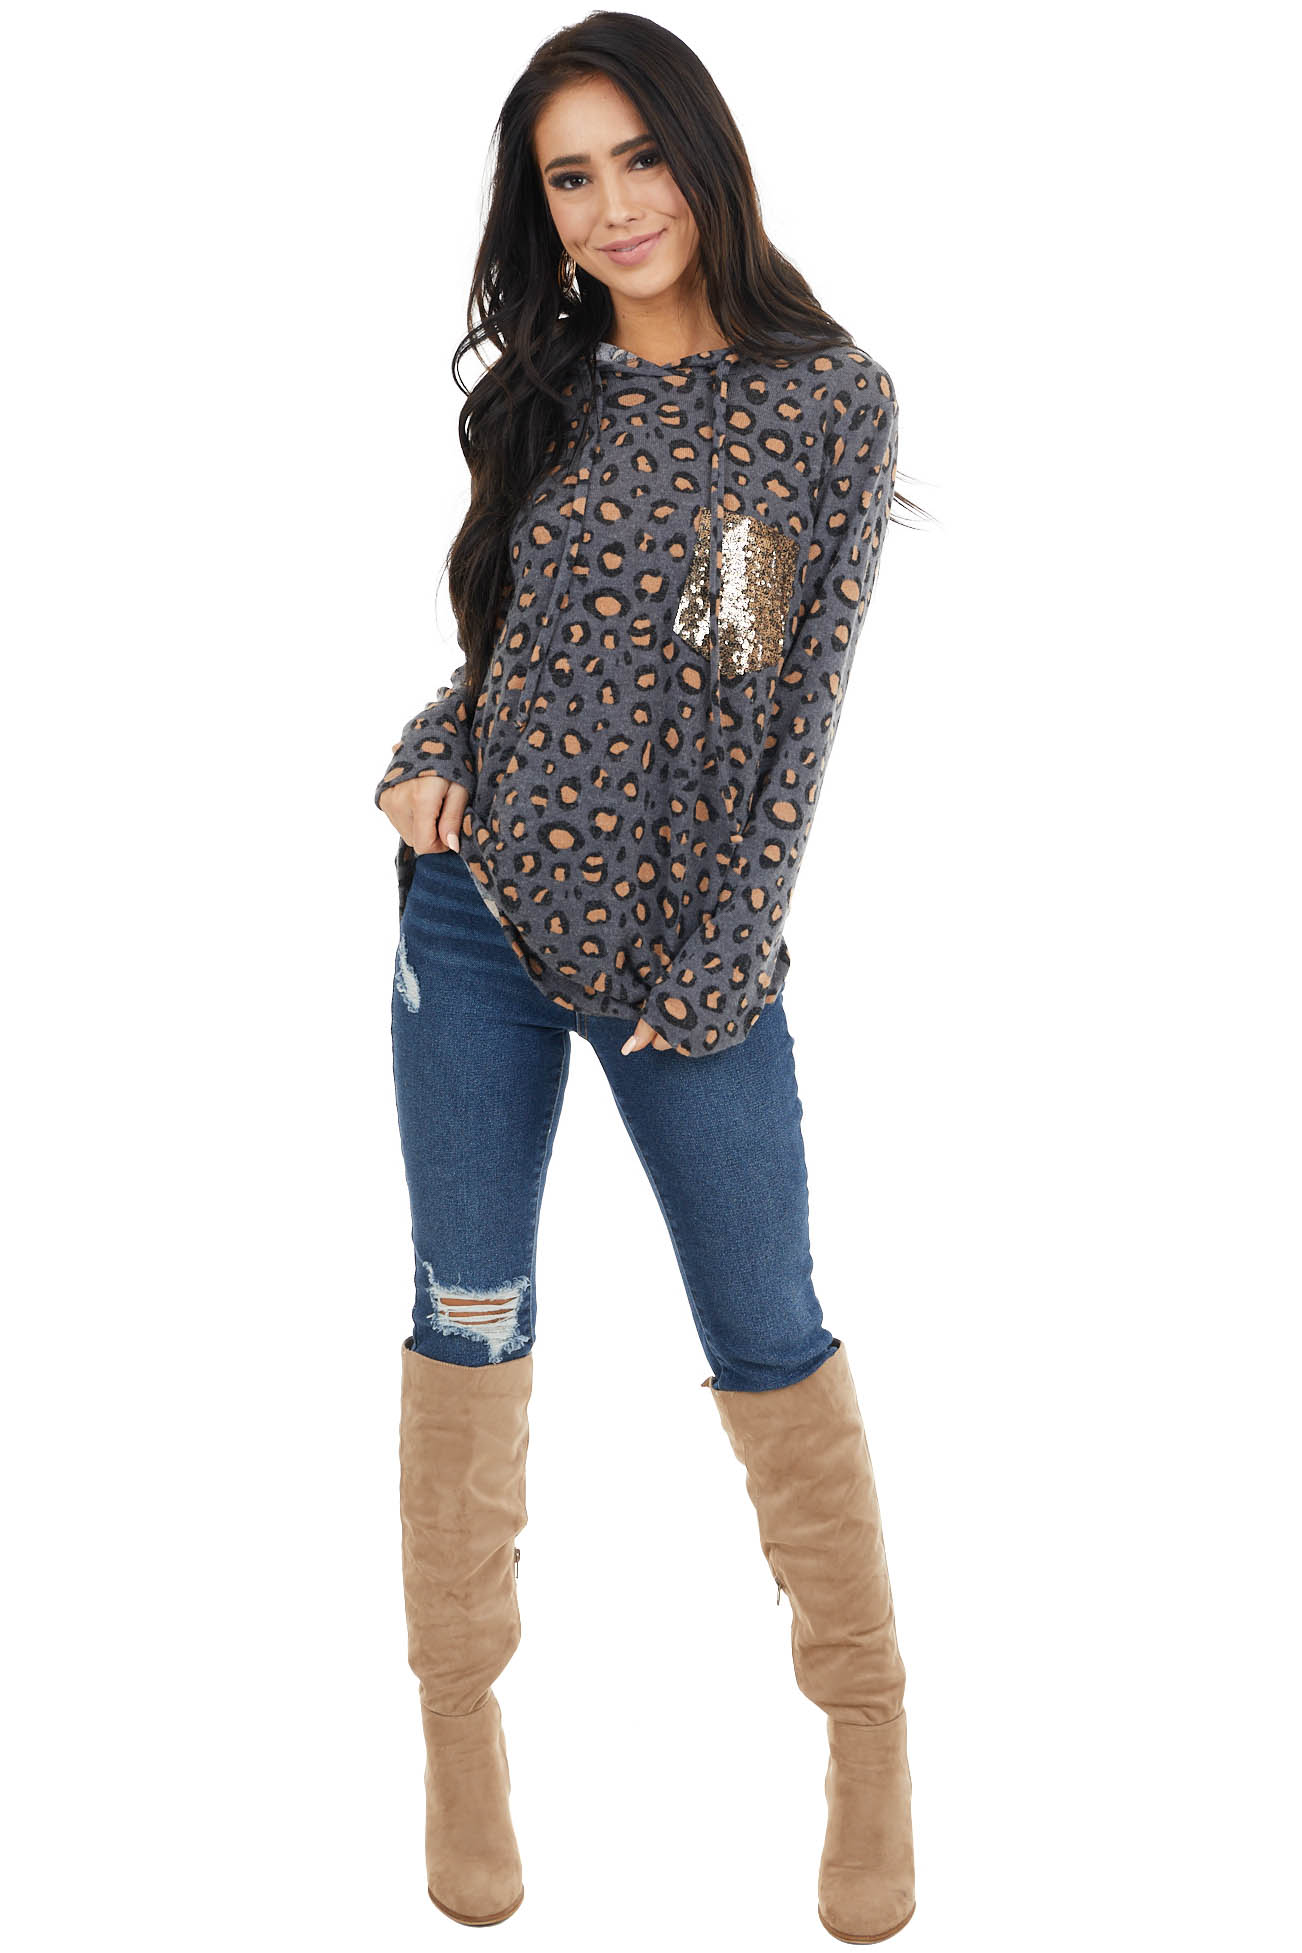 Charcoal Leopard Print Top with Sequin Pocket Detail